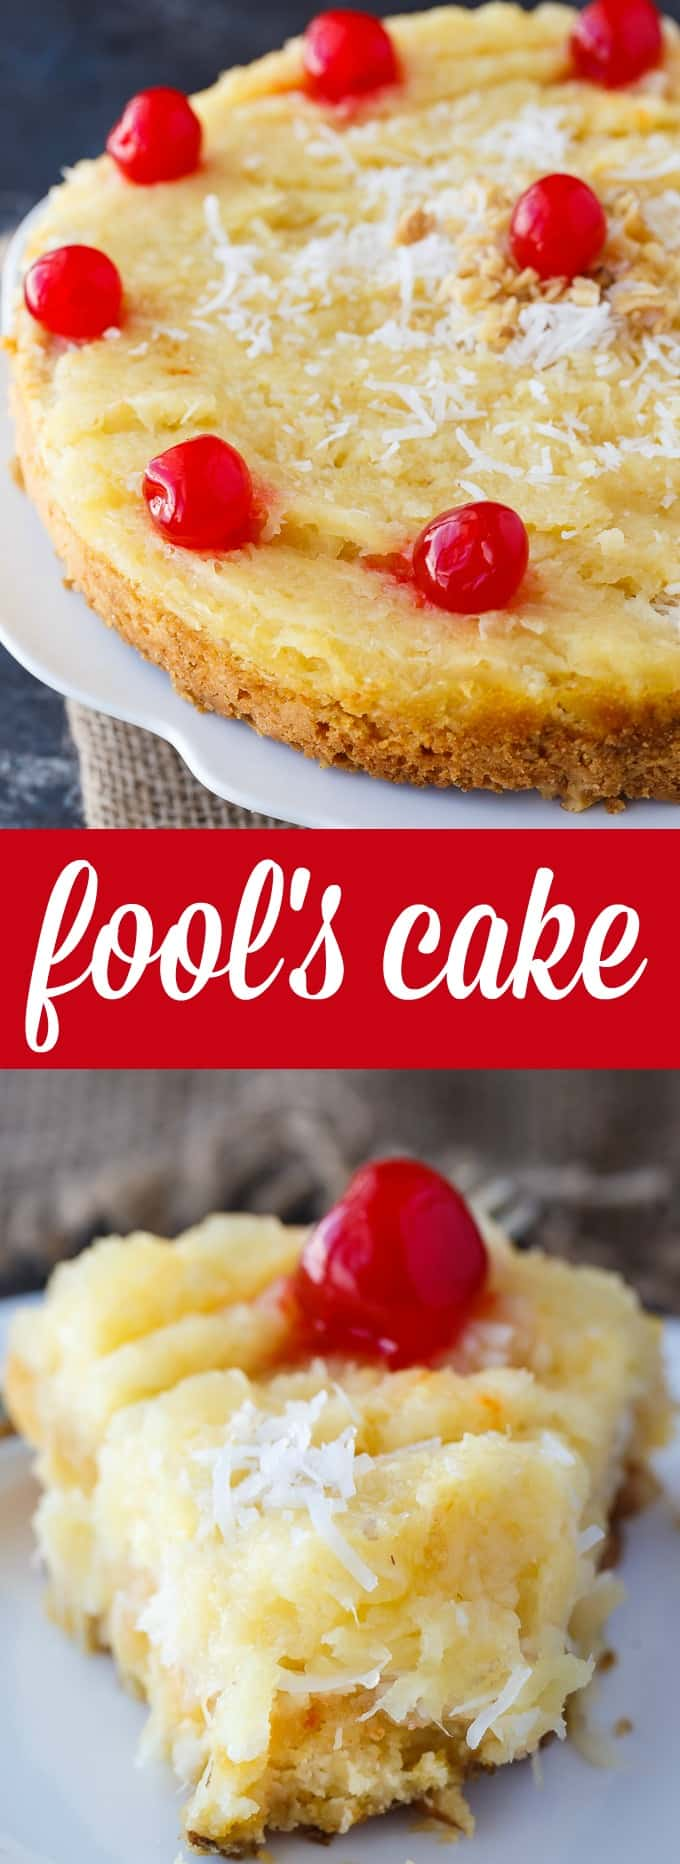 Fool's Cake - A simple, fool-proof cake everyone loves! This yummy dessert has layers of walnuts, yellow cake, coconut and pineapple. Perfect for potlucks!